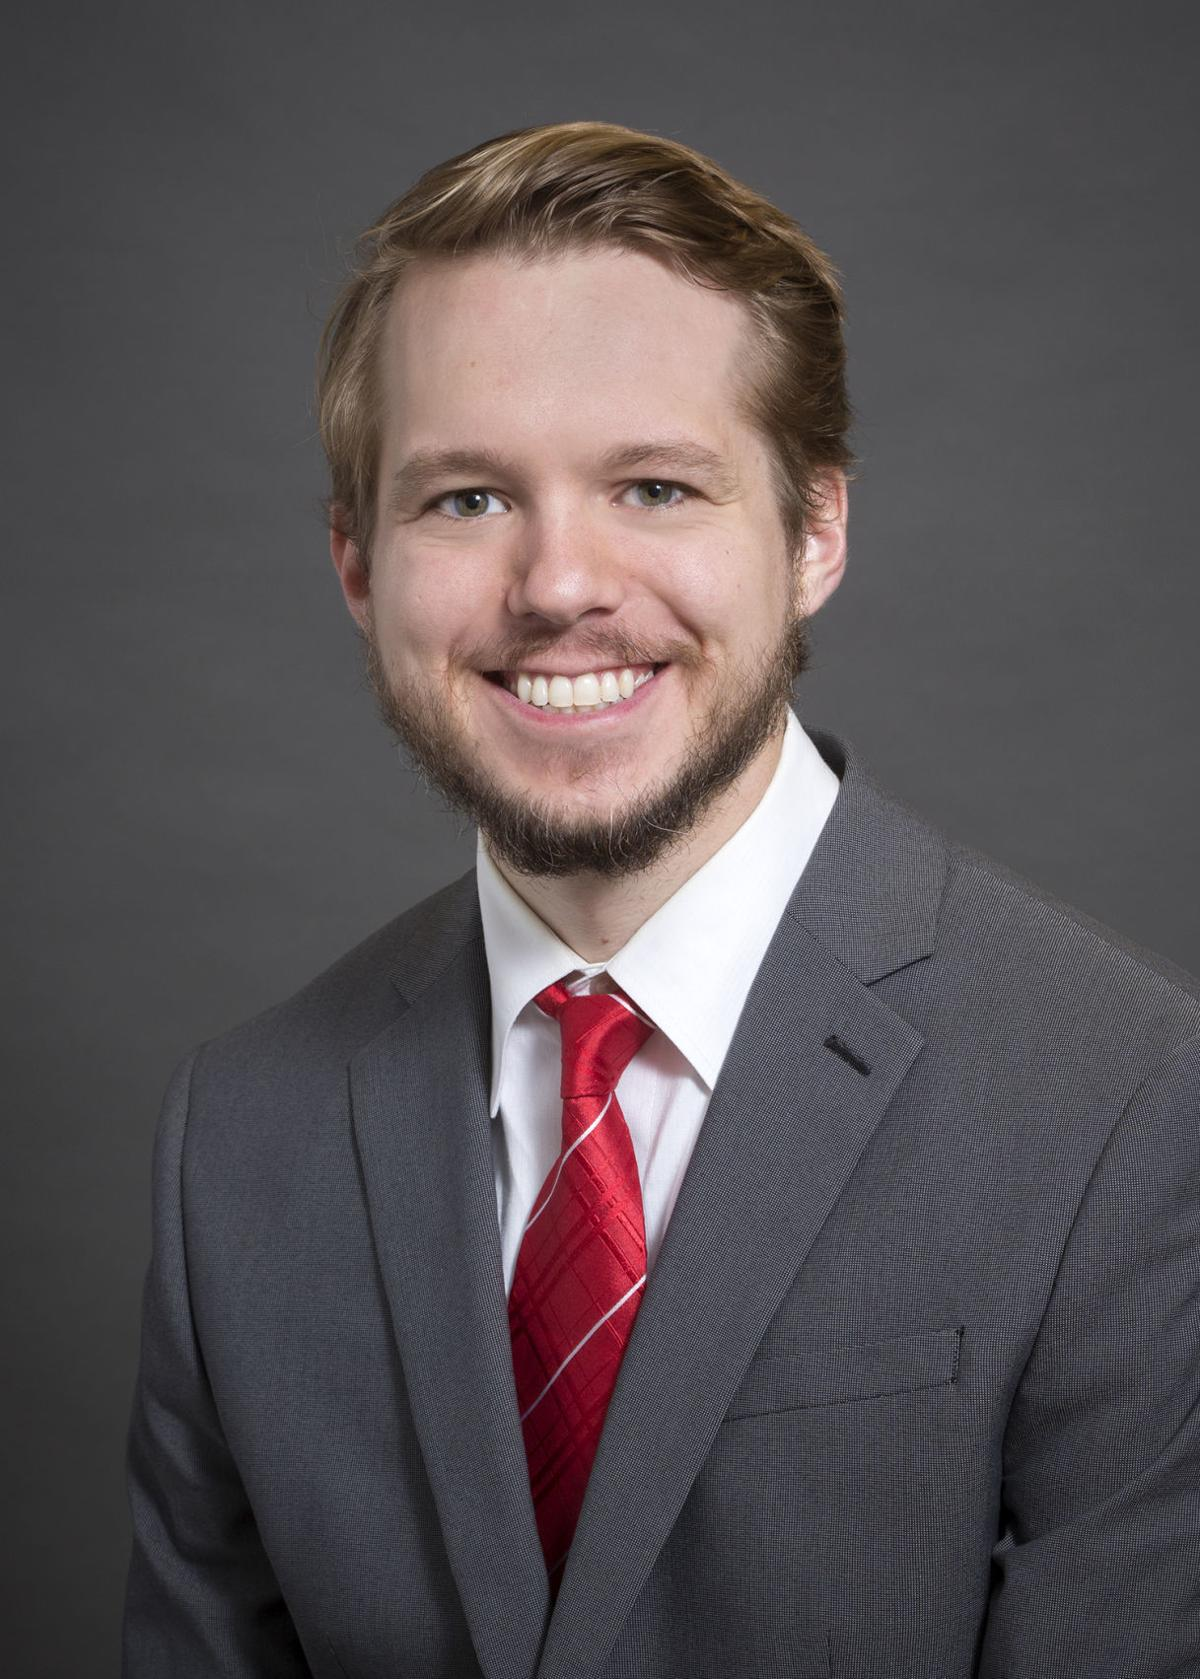 Bryan Neurology welcomes Trevor Gregath, MD